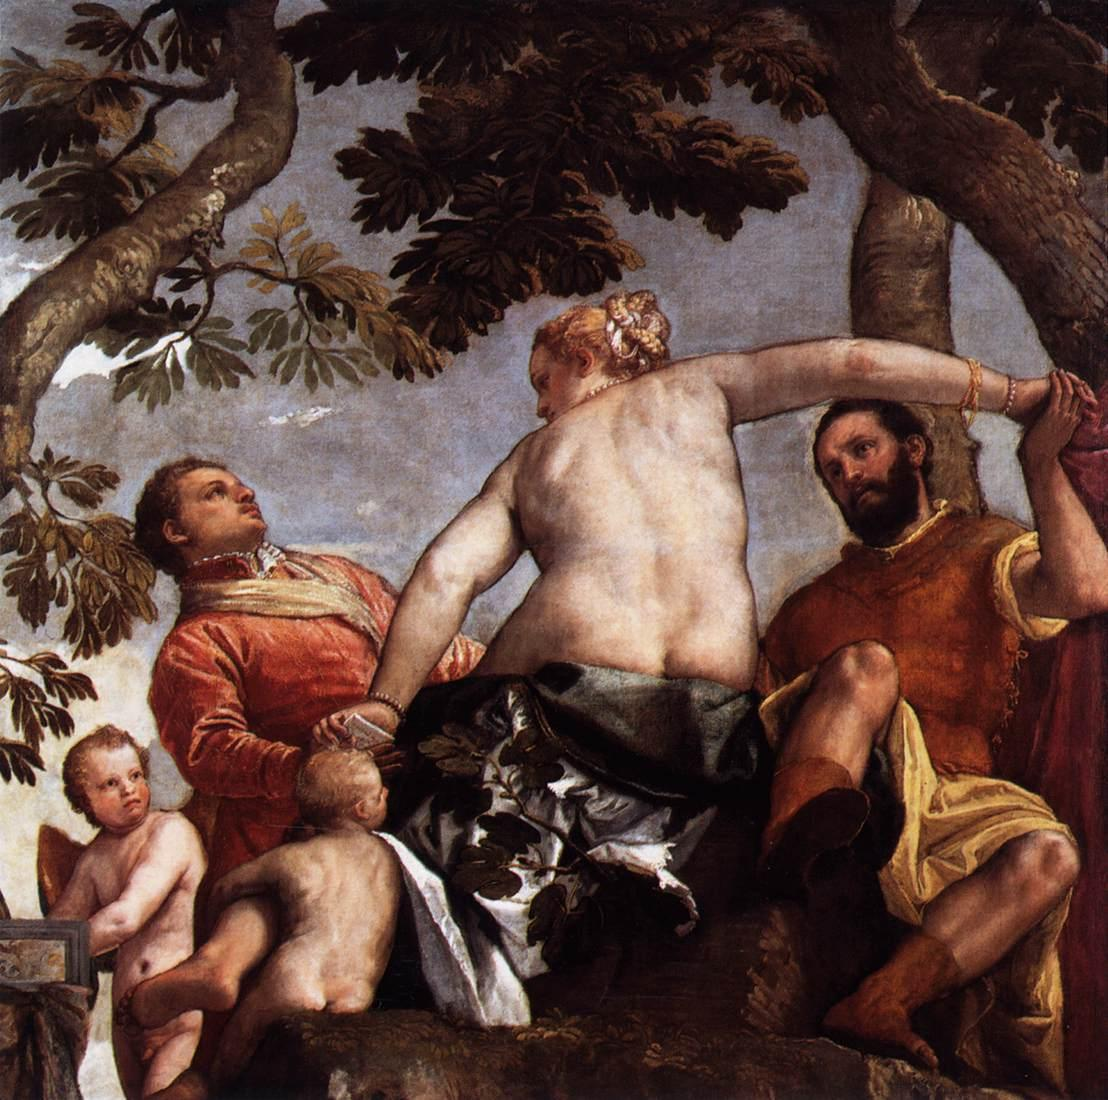 Infidelity by Veronese, 1575 (Wikimedia Commons)